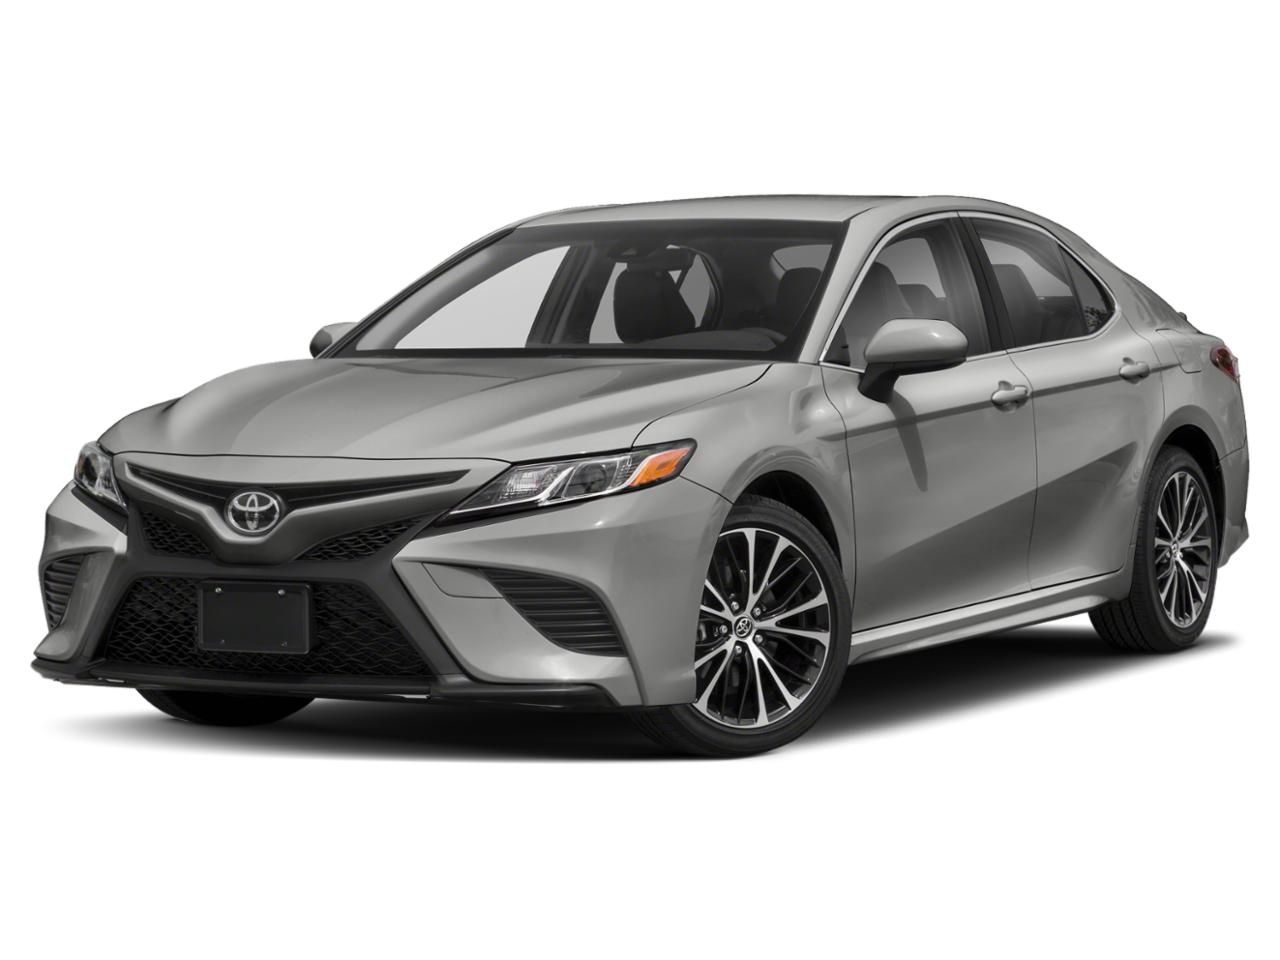 2018 Toyota Camry Vehicle Photo in San Antonio, TX 78230